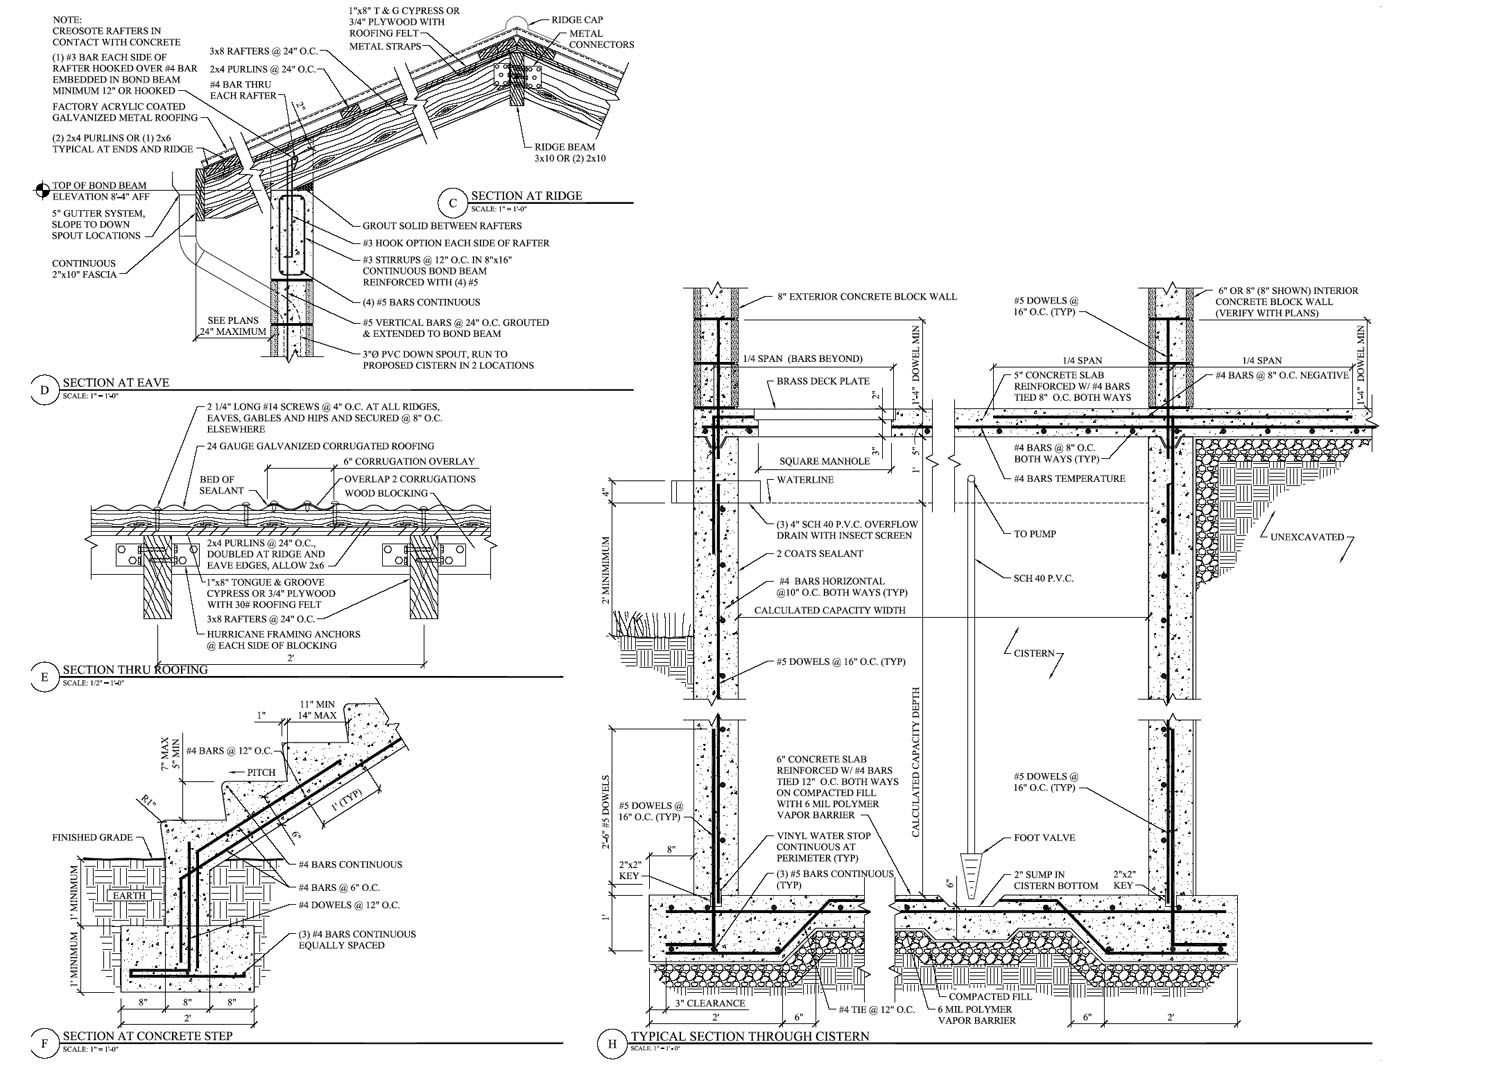 Section Drawings Including Details Examples | More Detailed ...